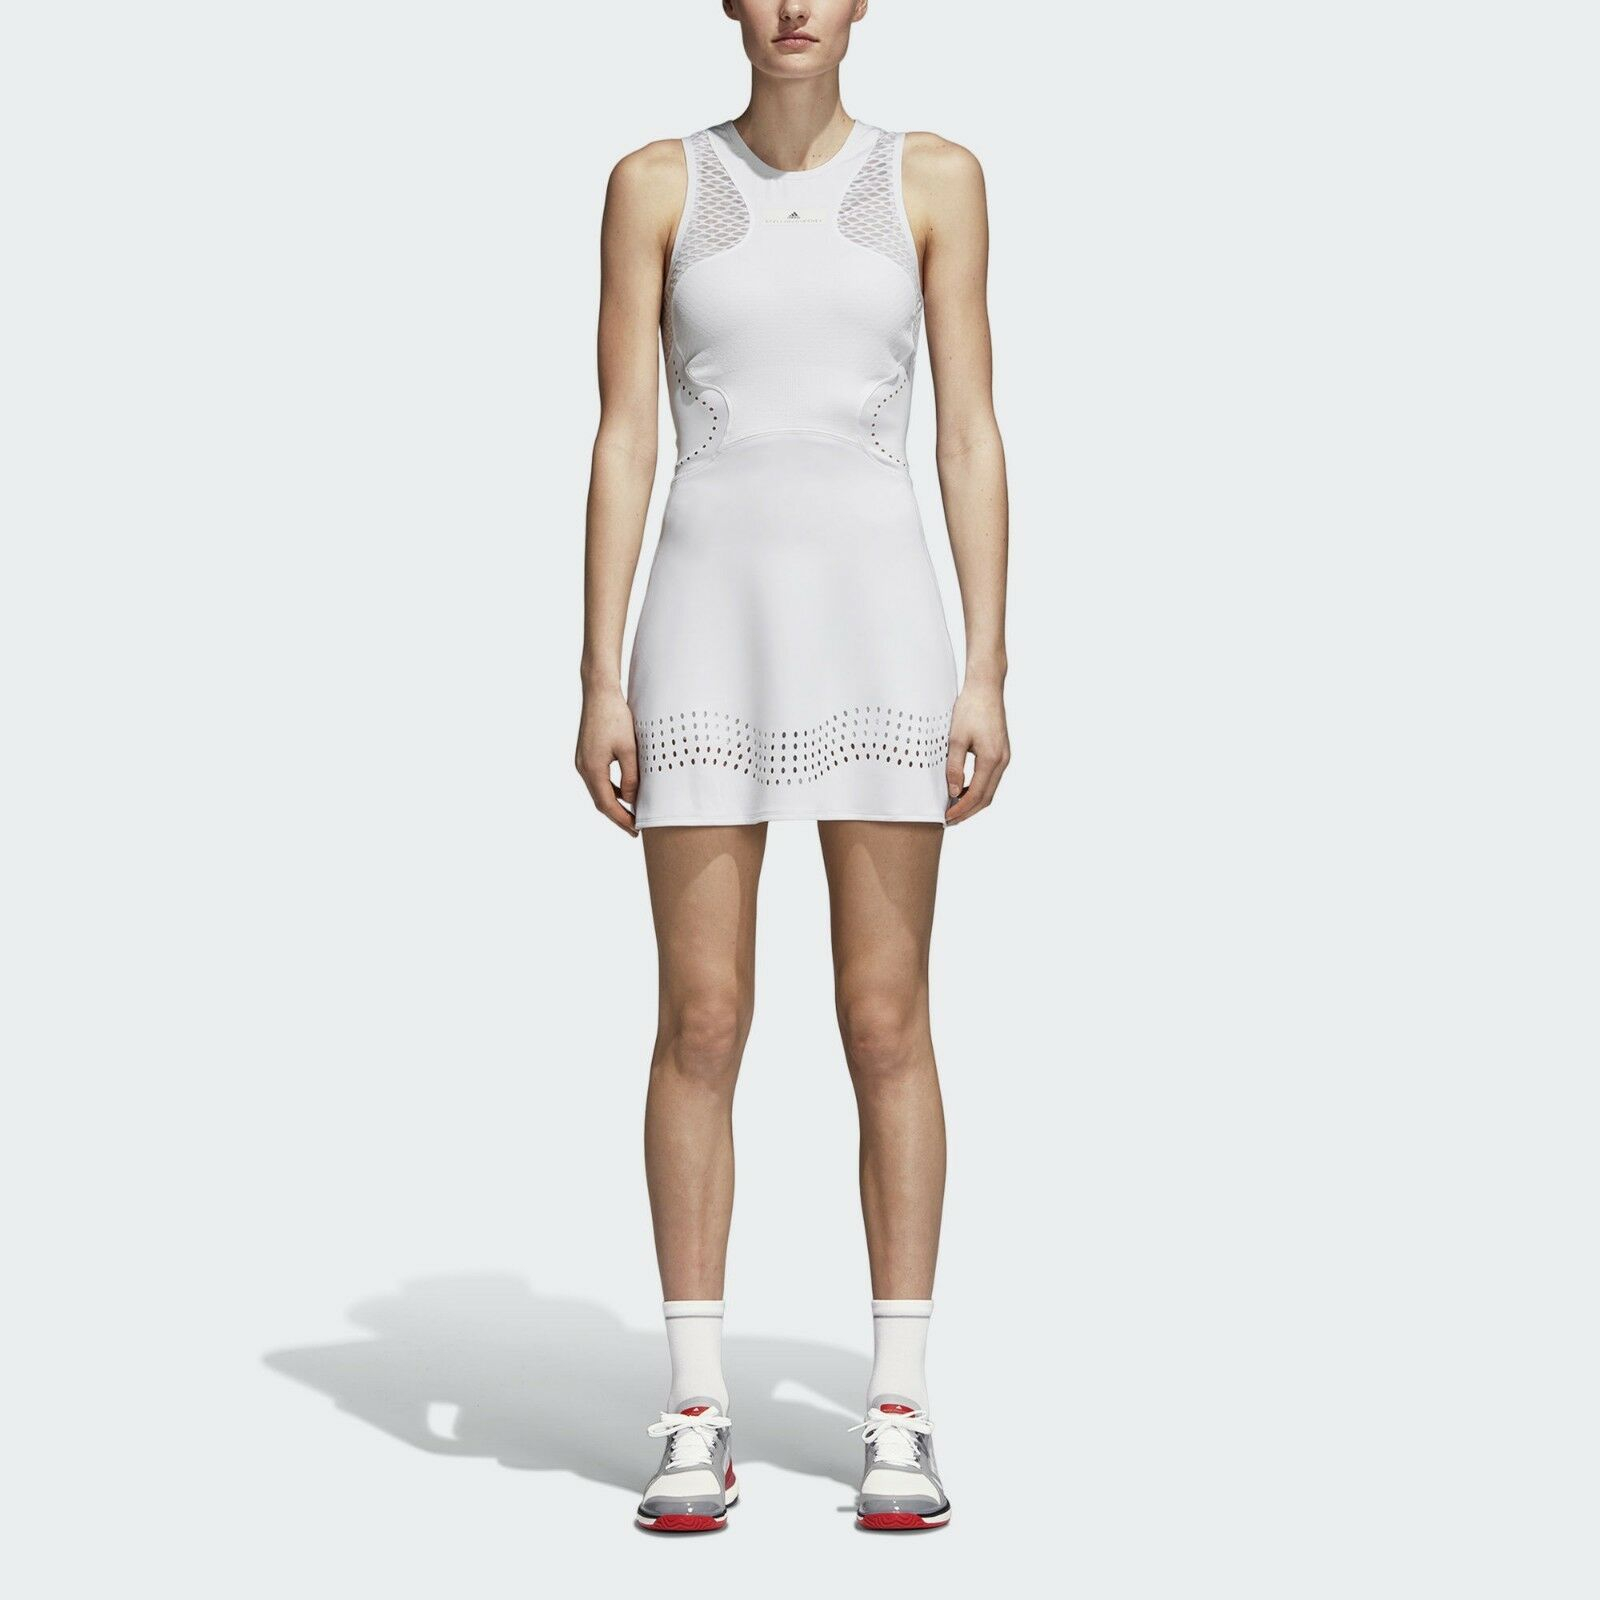 STELLA McCARTNEY X Adidas CY1904 Breathable TENNIS DRESS & Shorts WHITE ( M )